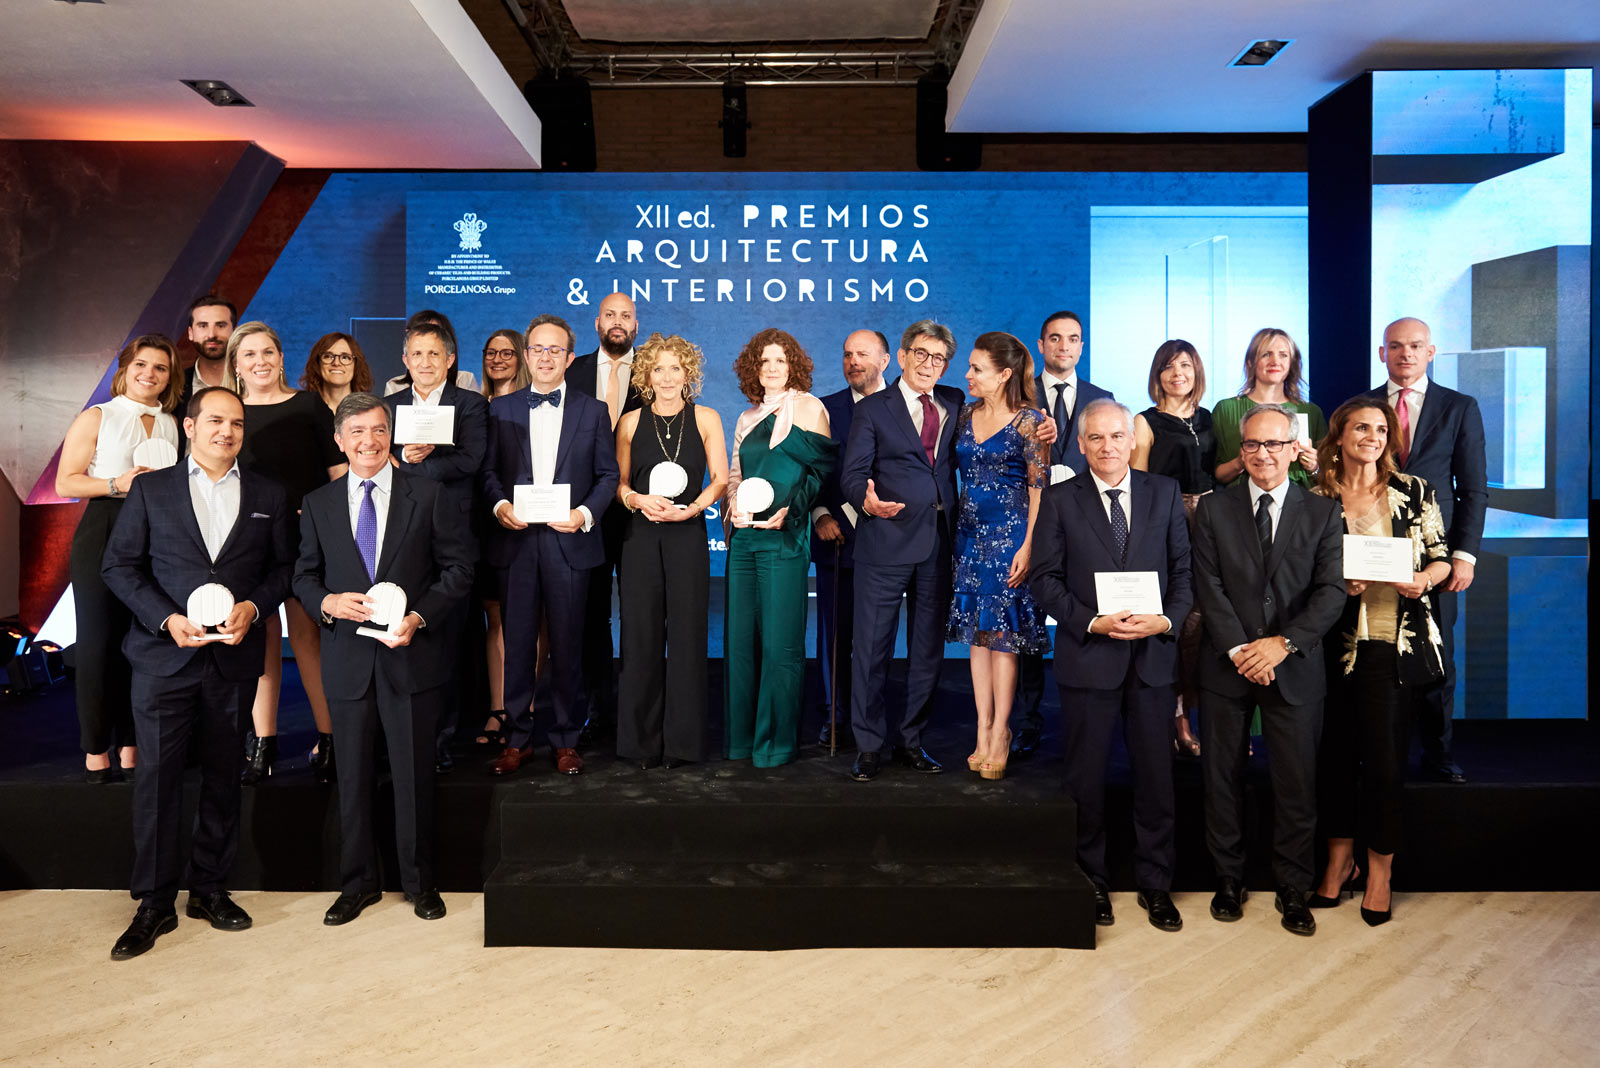 The 12th Porcelanosa Awards looks to the future through design, sustainable architecture and accessibility